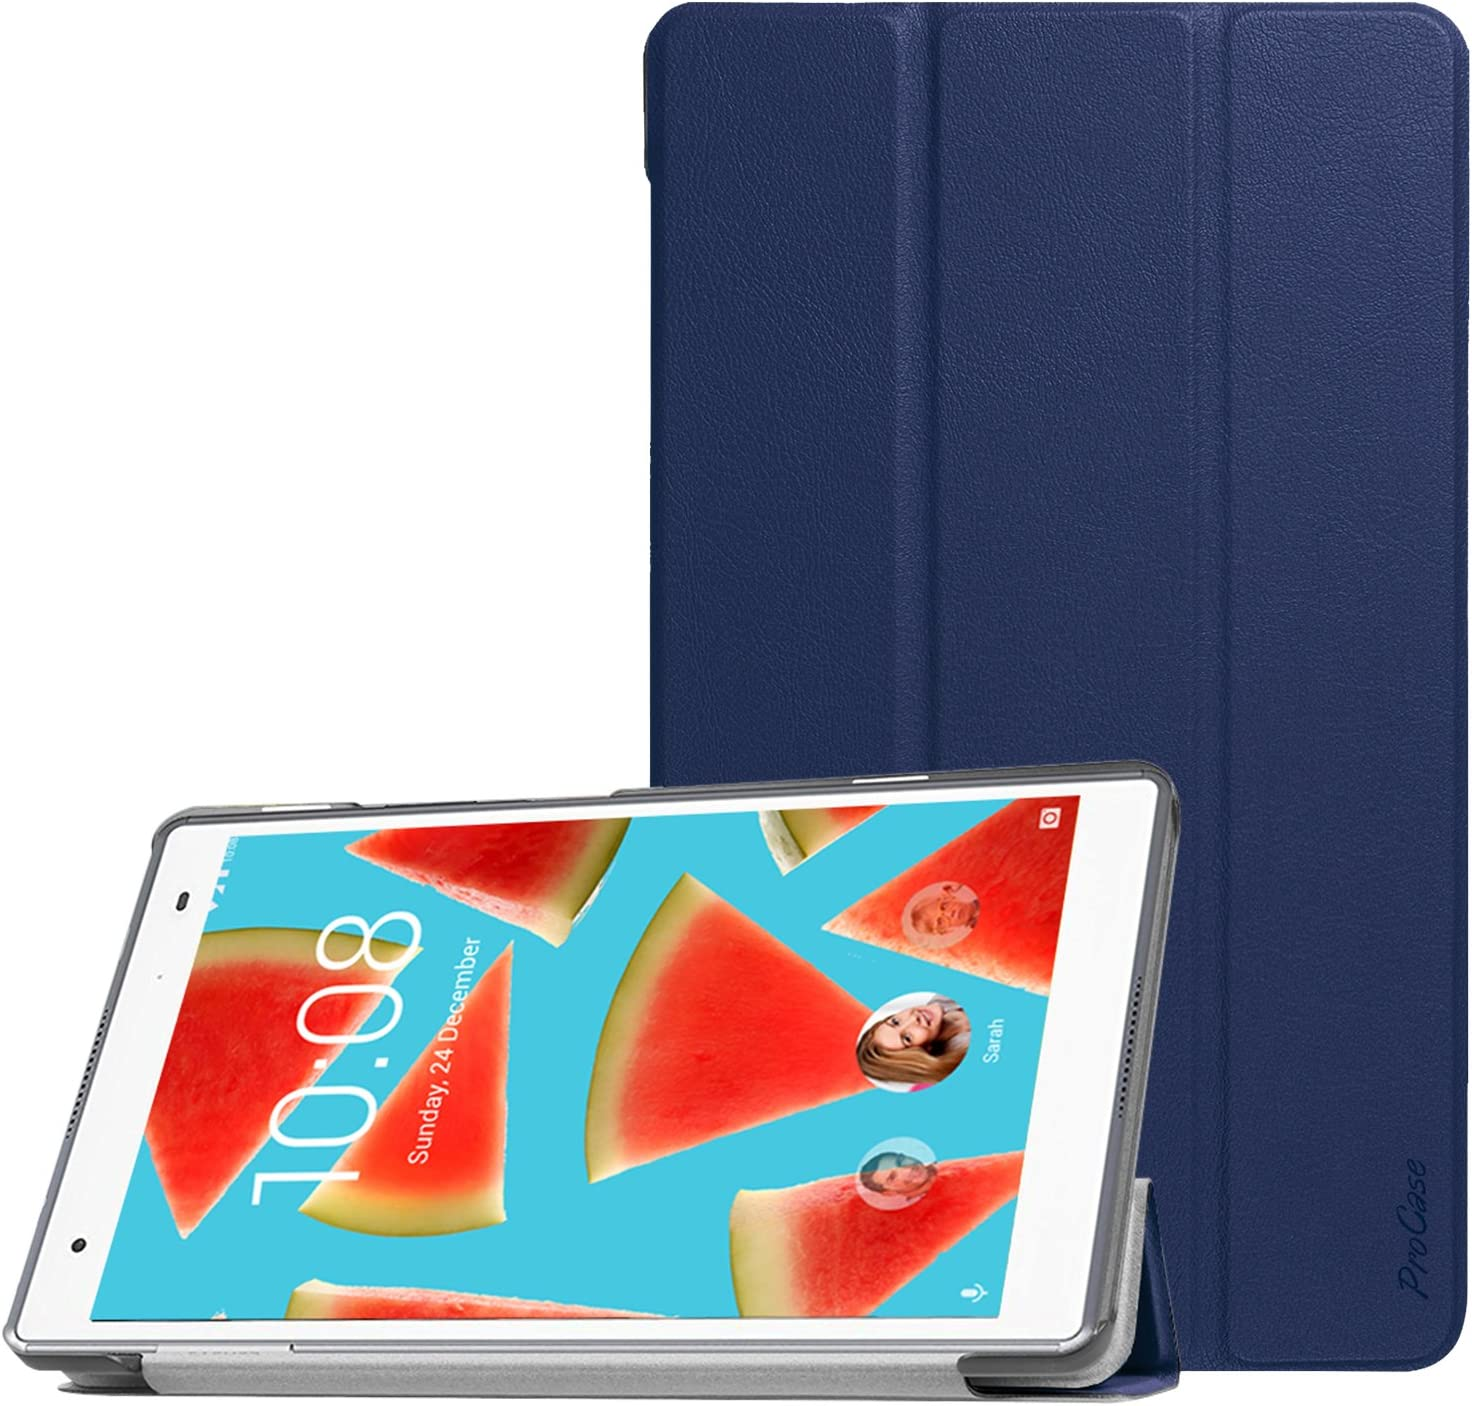 "ProCase Lenovo Tab 4 8 Case, Slim Stand Case Hard Shell Cover for 2017 Lenovo Tab 4 8"" Android Tablet -Navy"